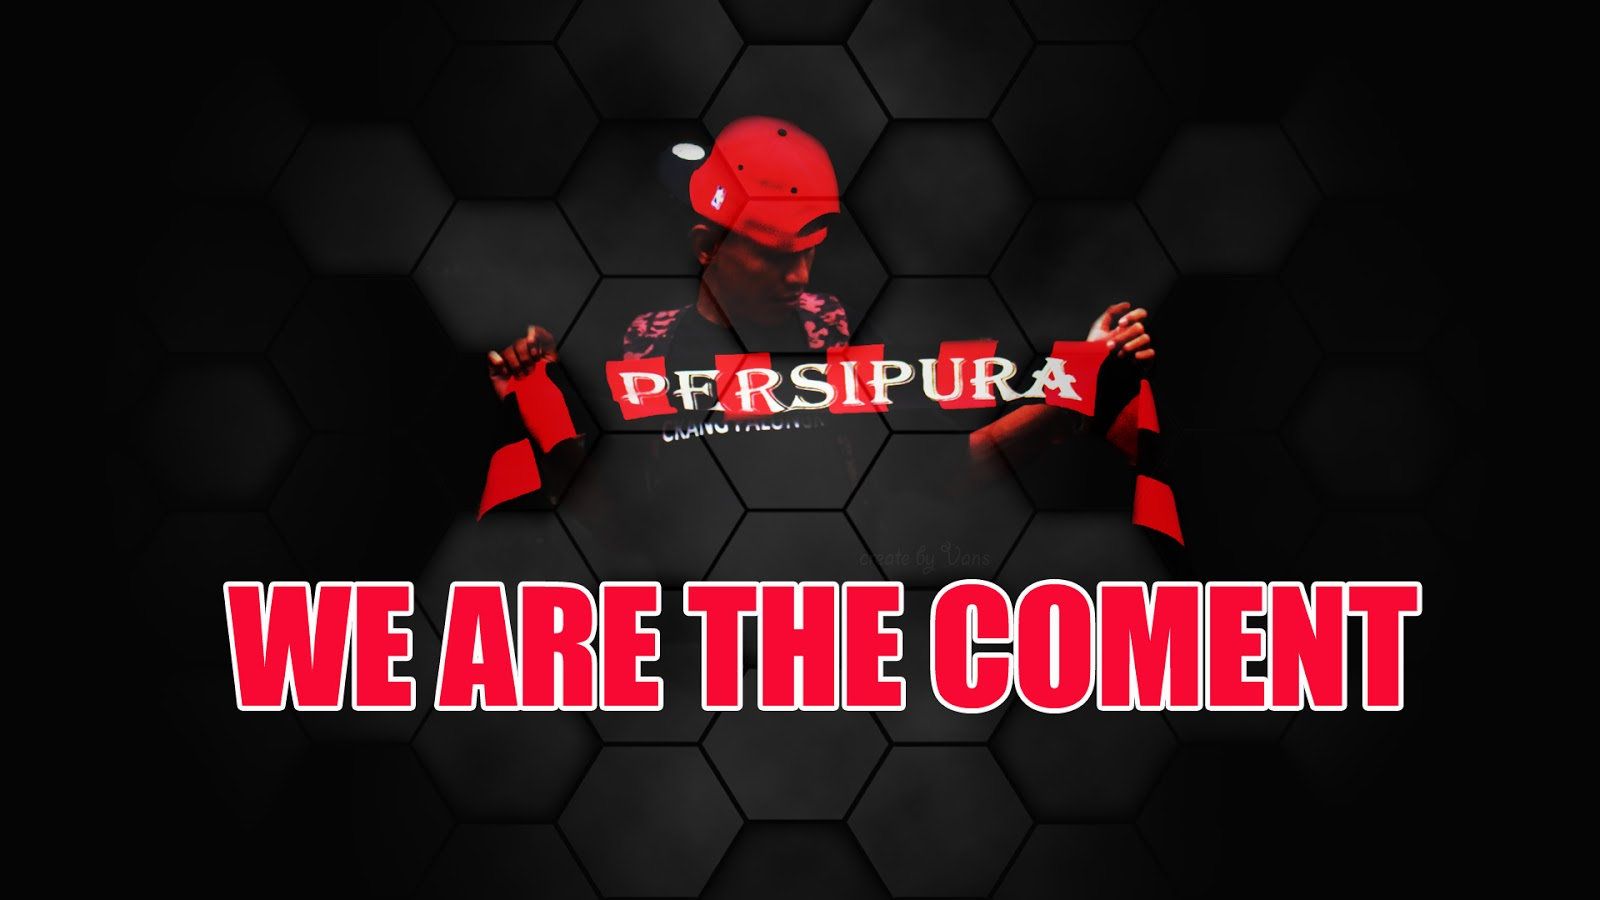 PERSIPURA JAYAPURA NEW WALLPAPER